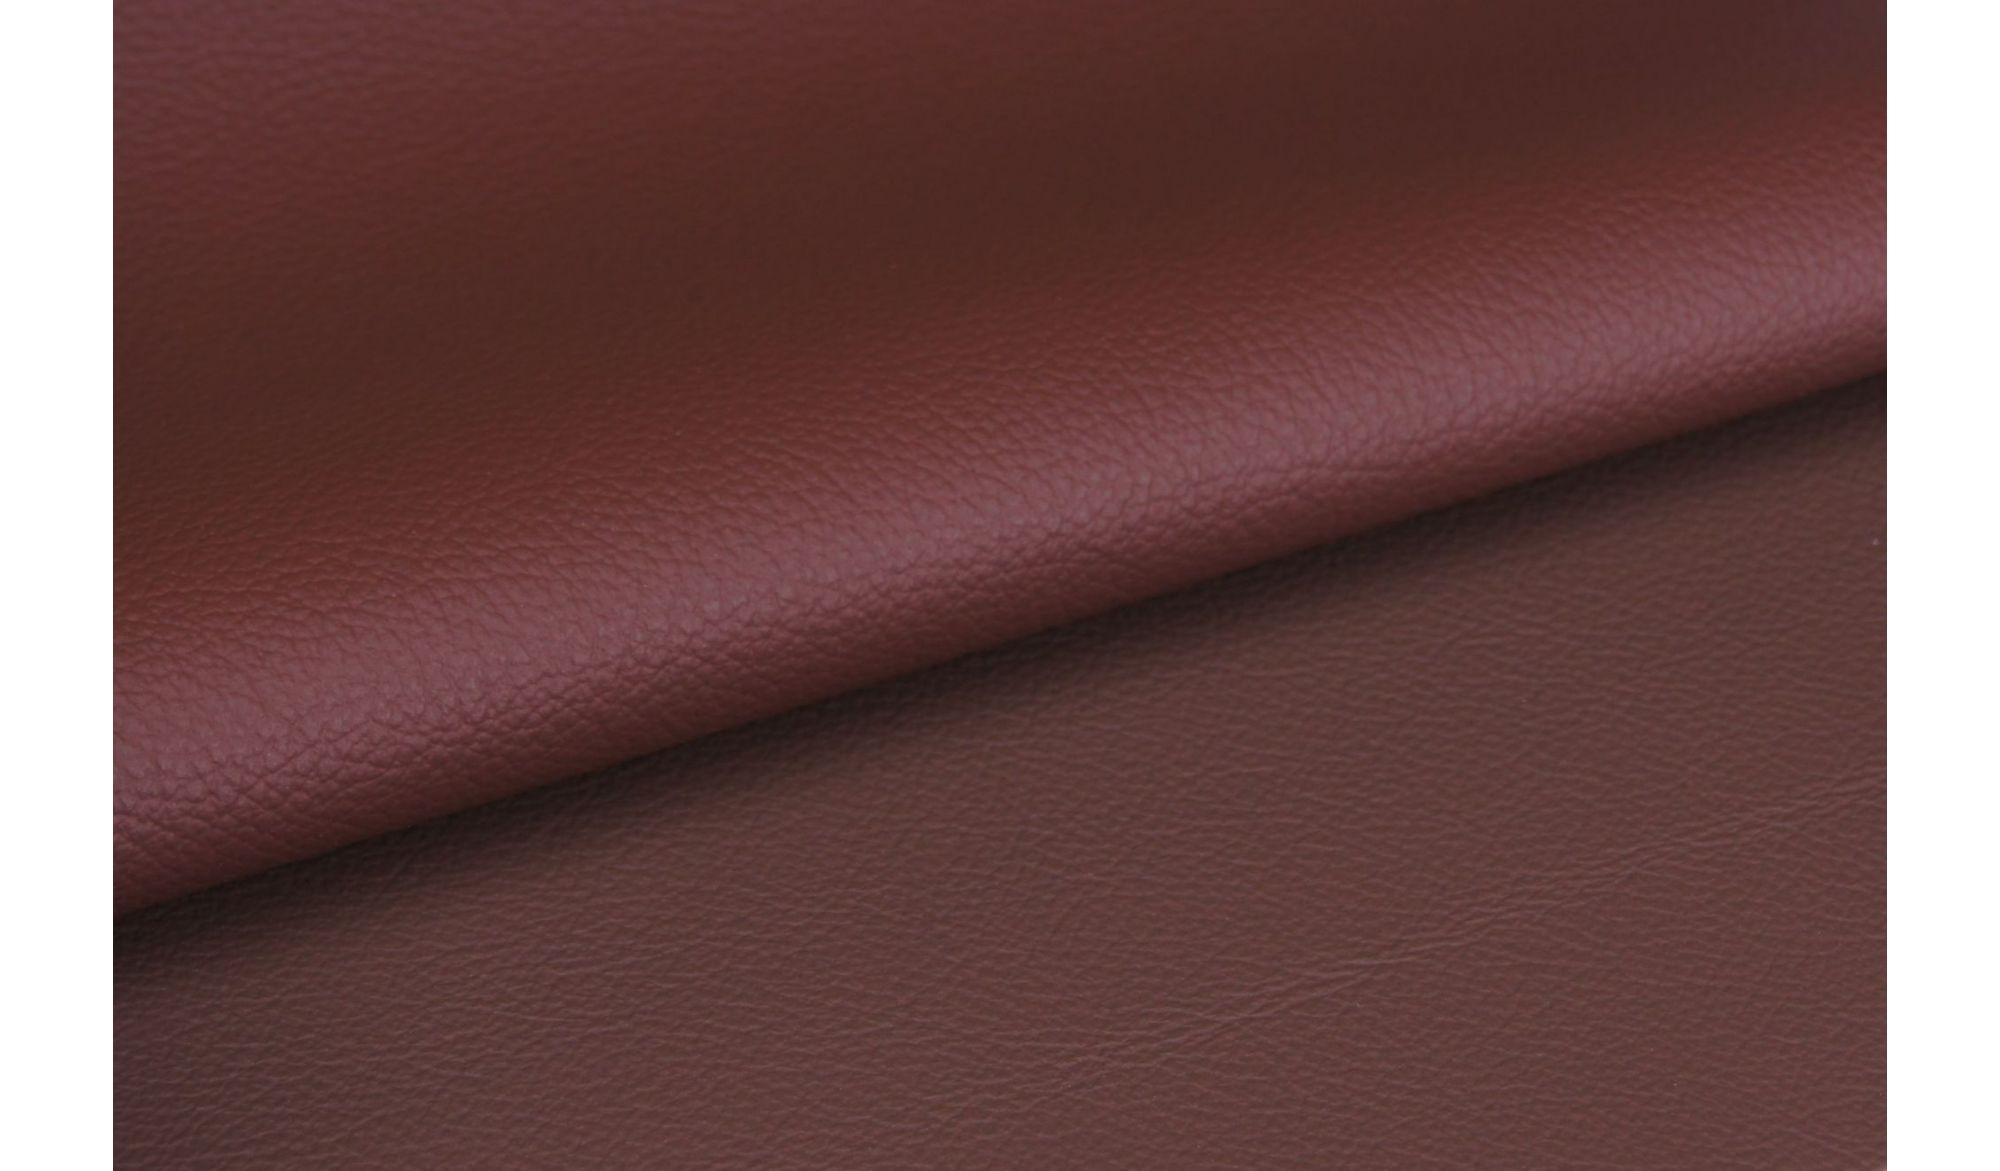 SKÓRA MAMMUT Bordeaux 25509 - Leather alt_skory_kolor_bordeaux 25509 Upholstery IMO Plain - Default